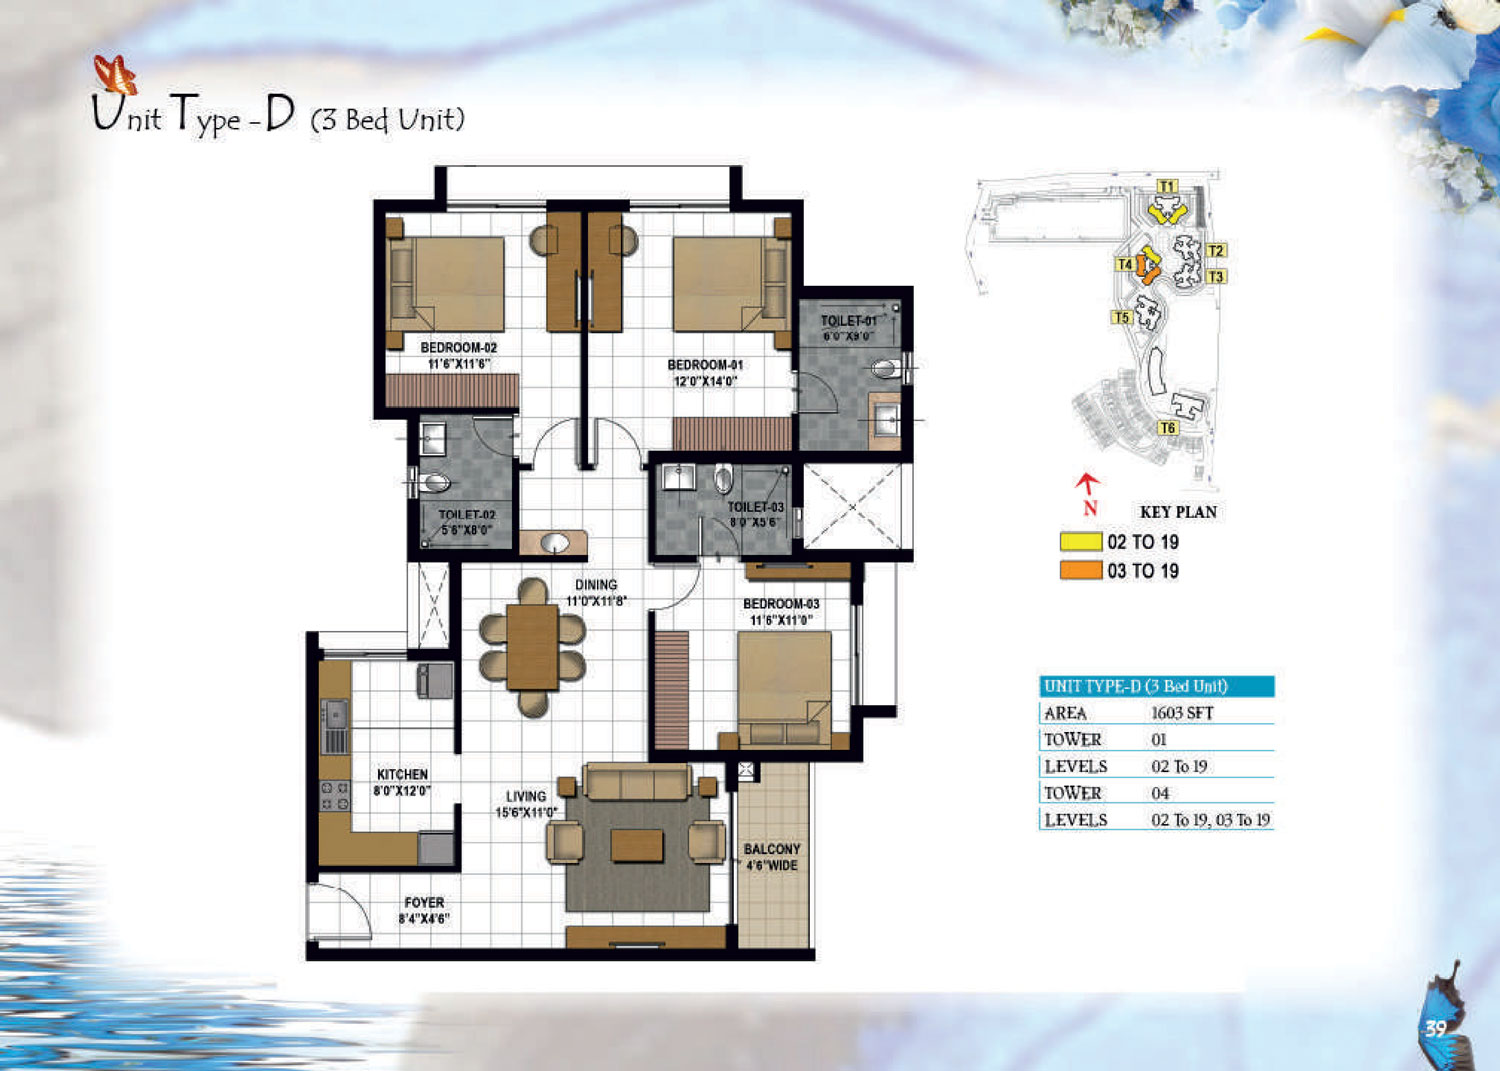 Type D - 1603 Sq Ft